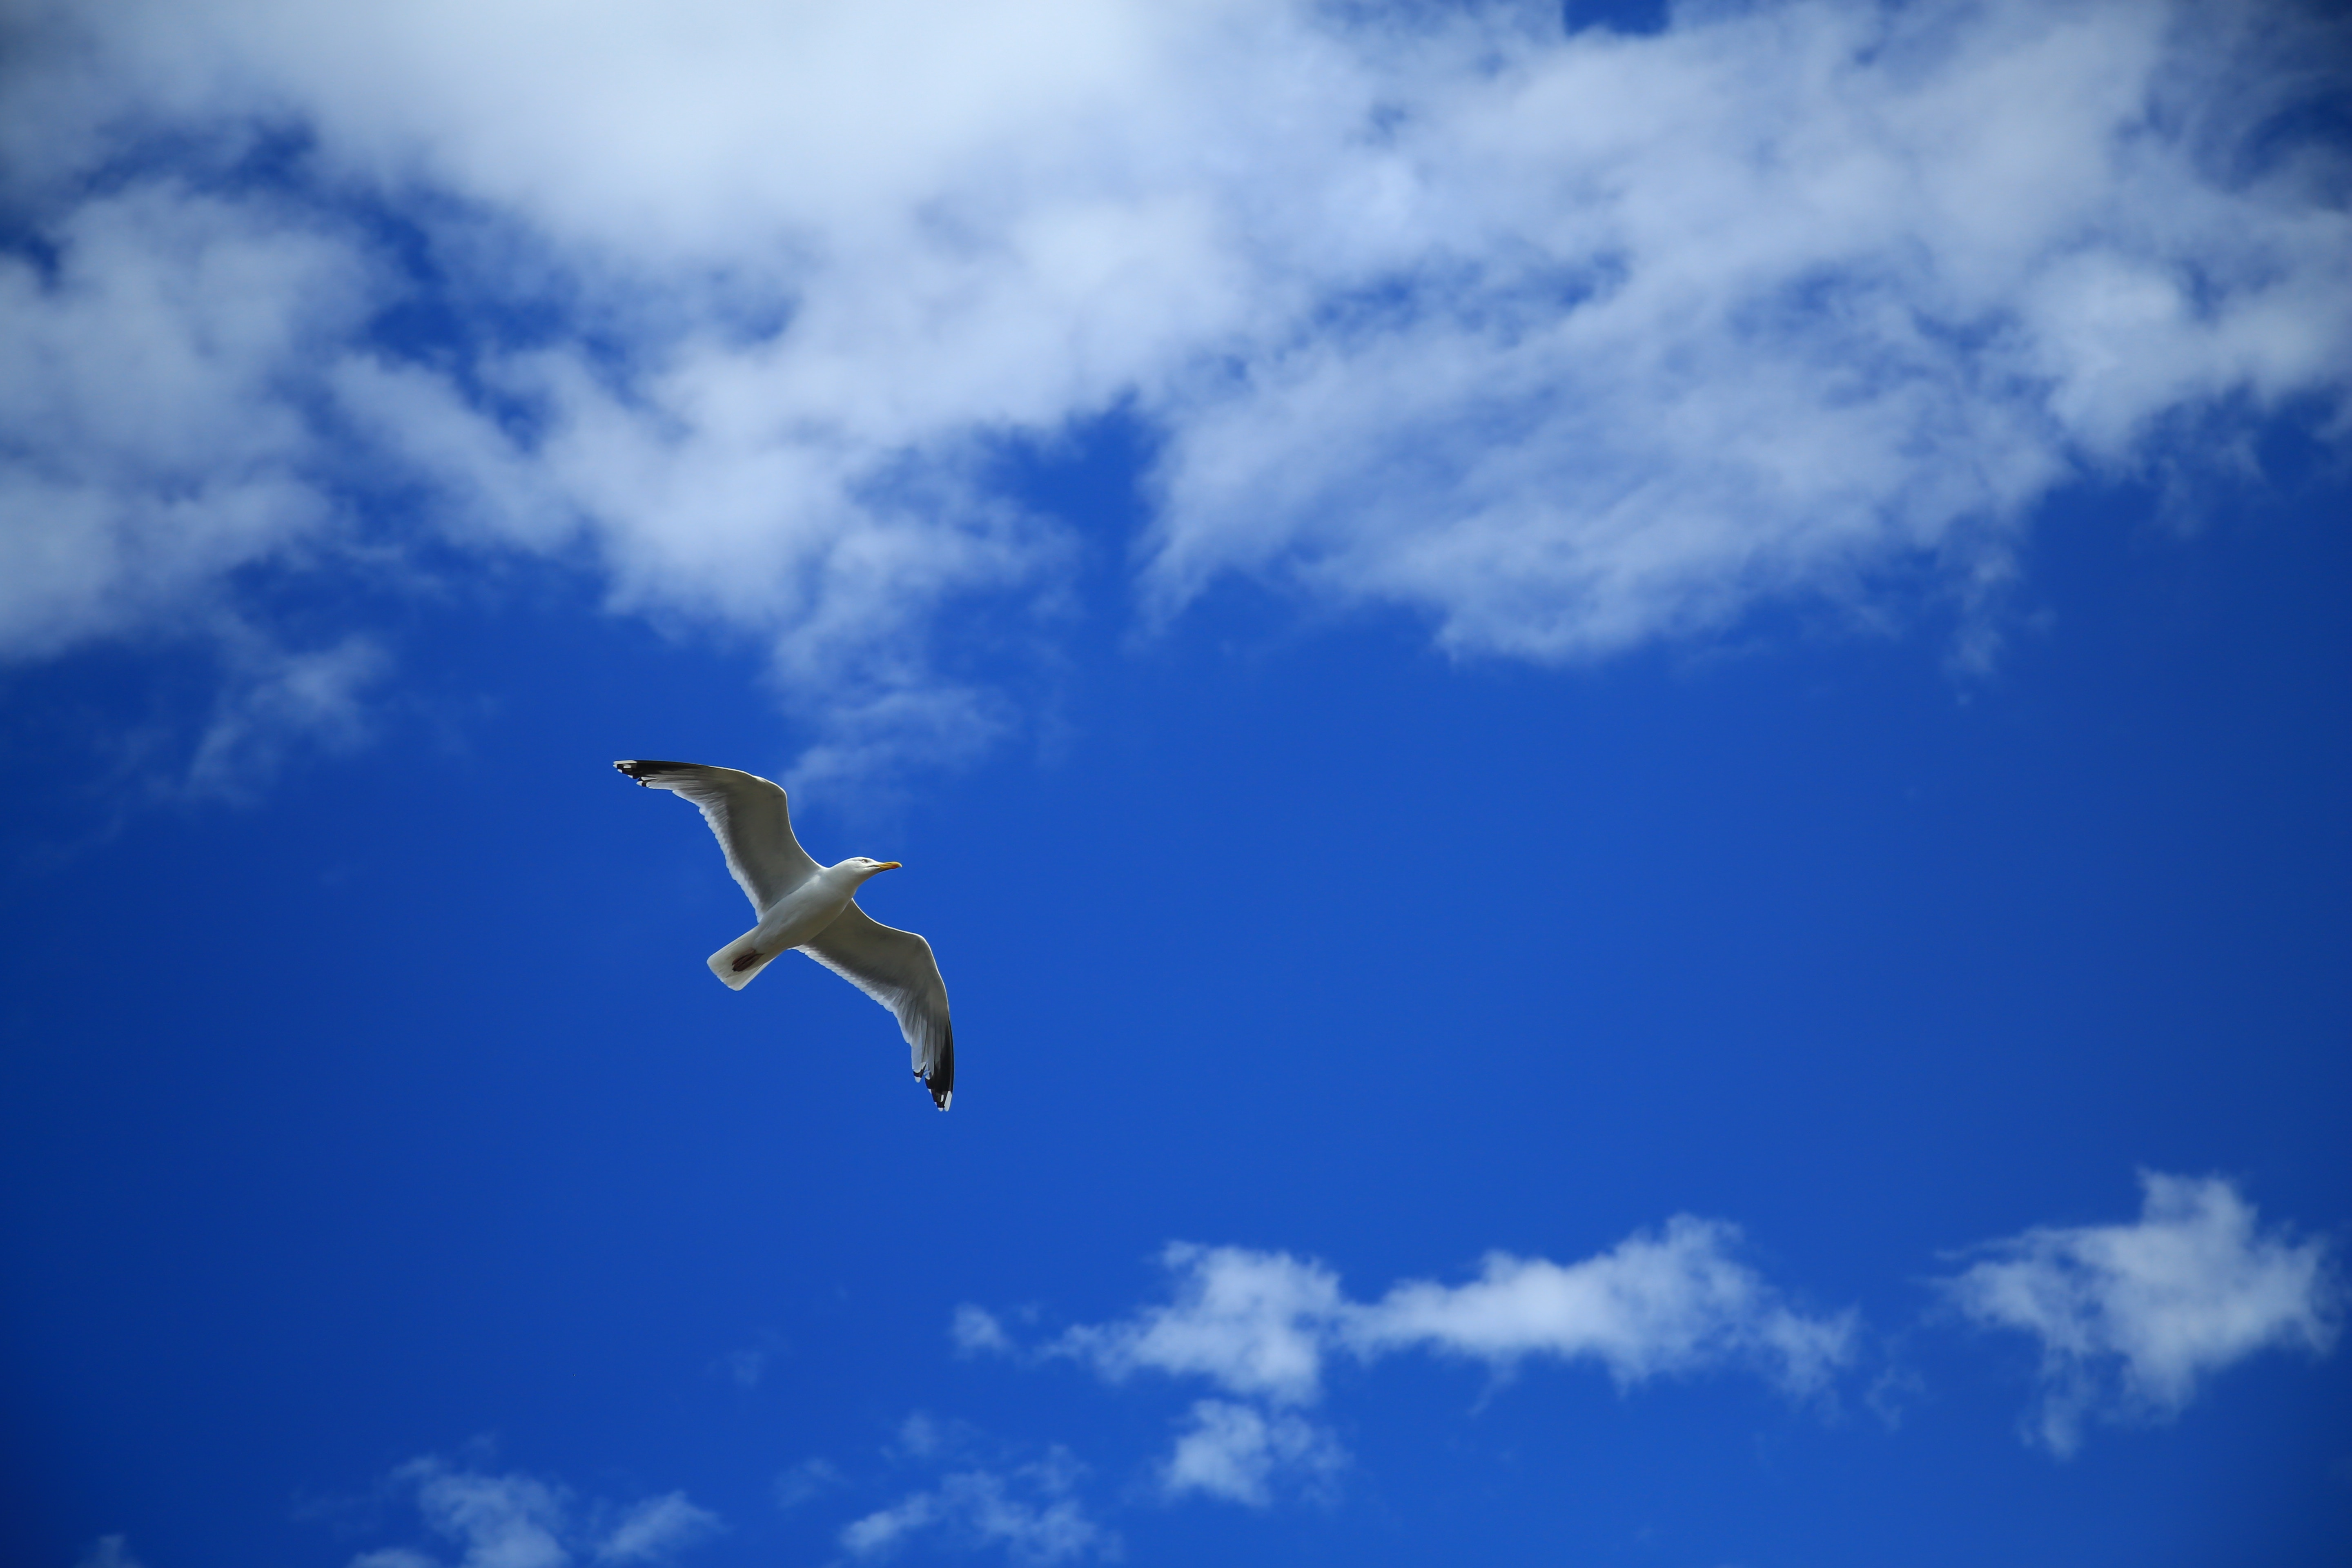 129365 download wallpaper Animals, Gull, Seagull, Bird, Sky, Flight, Clouds screensavers and pictures for free